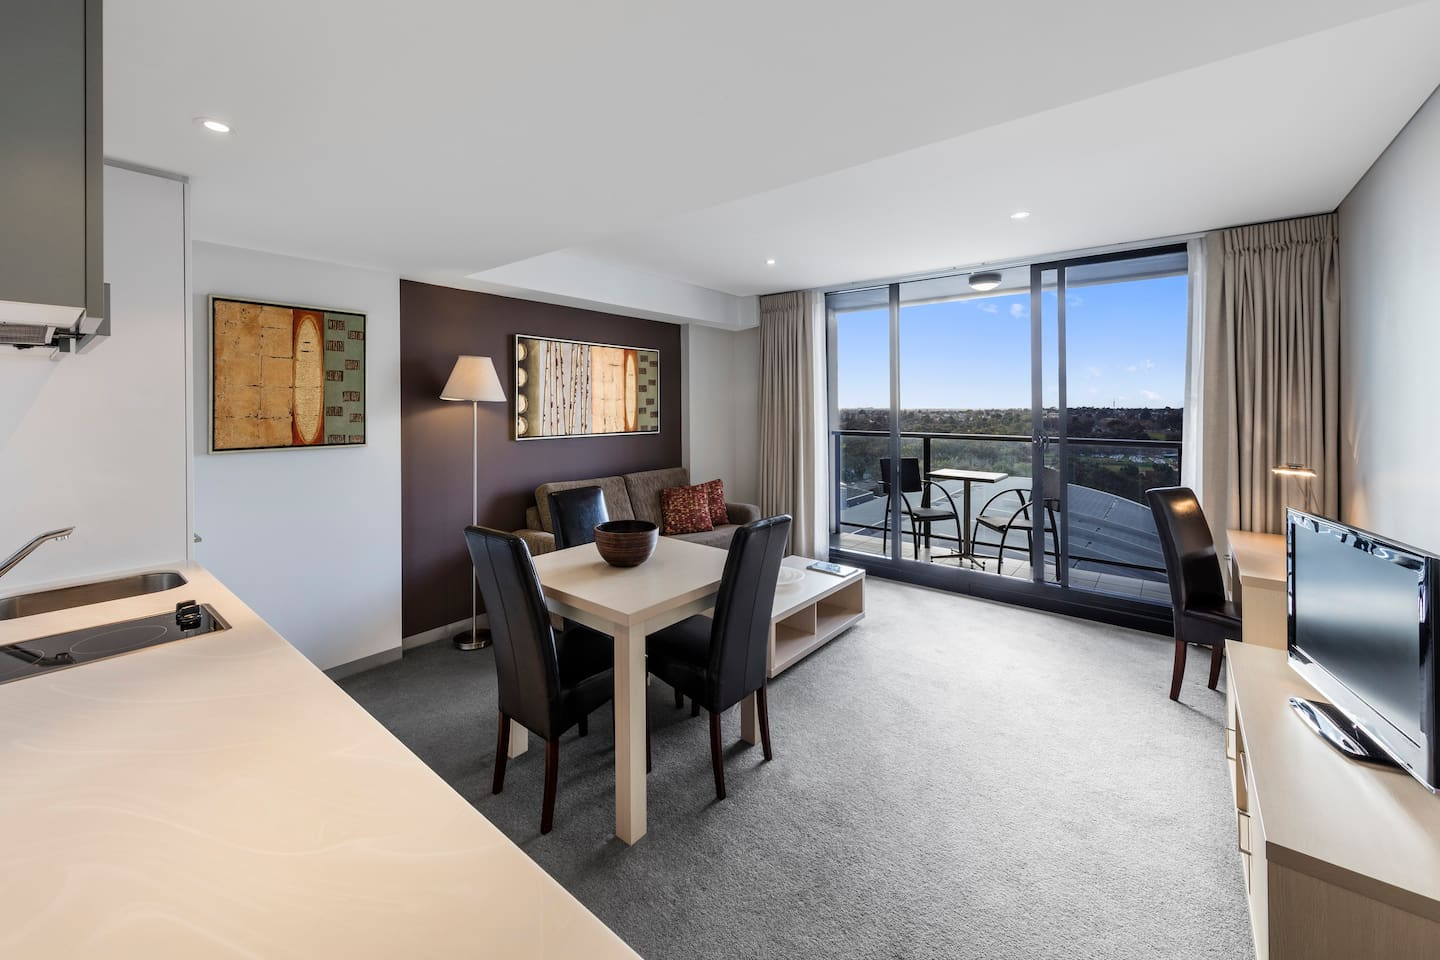 1 Bedroom: Dining and Living Room